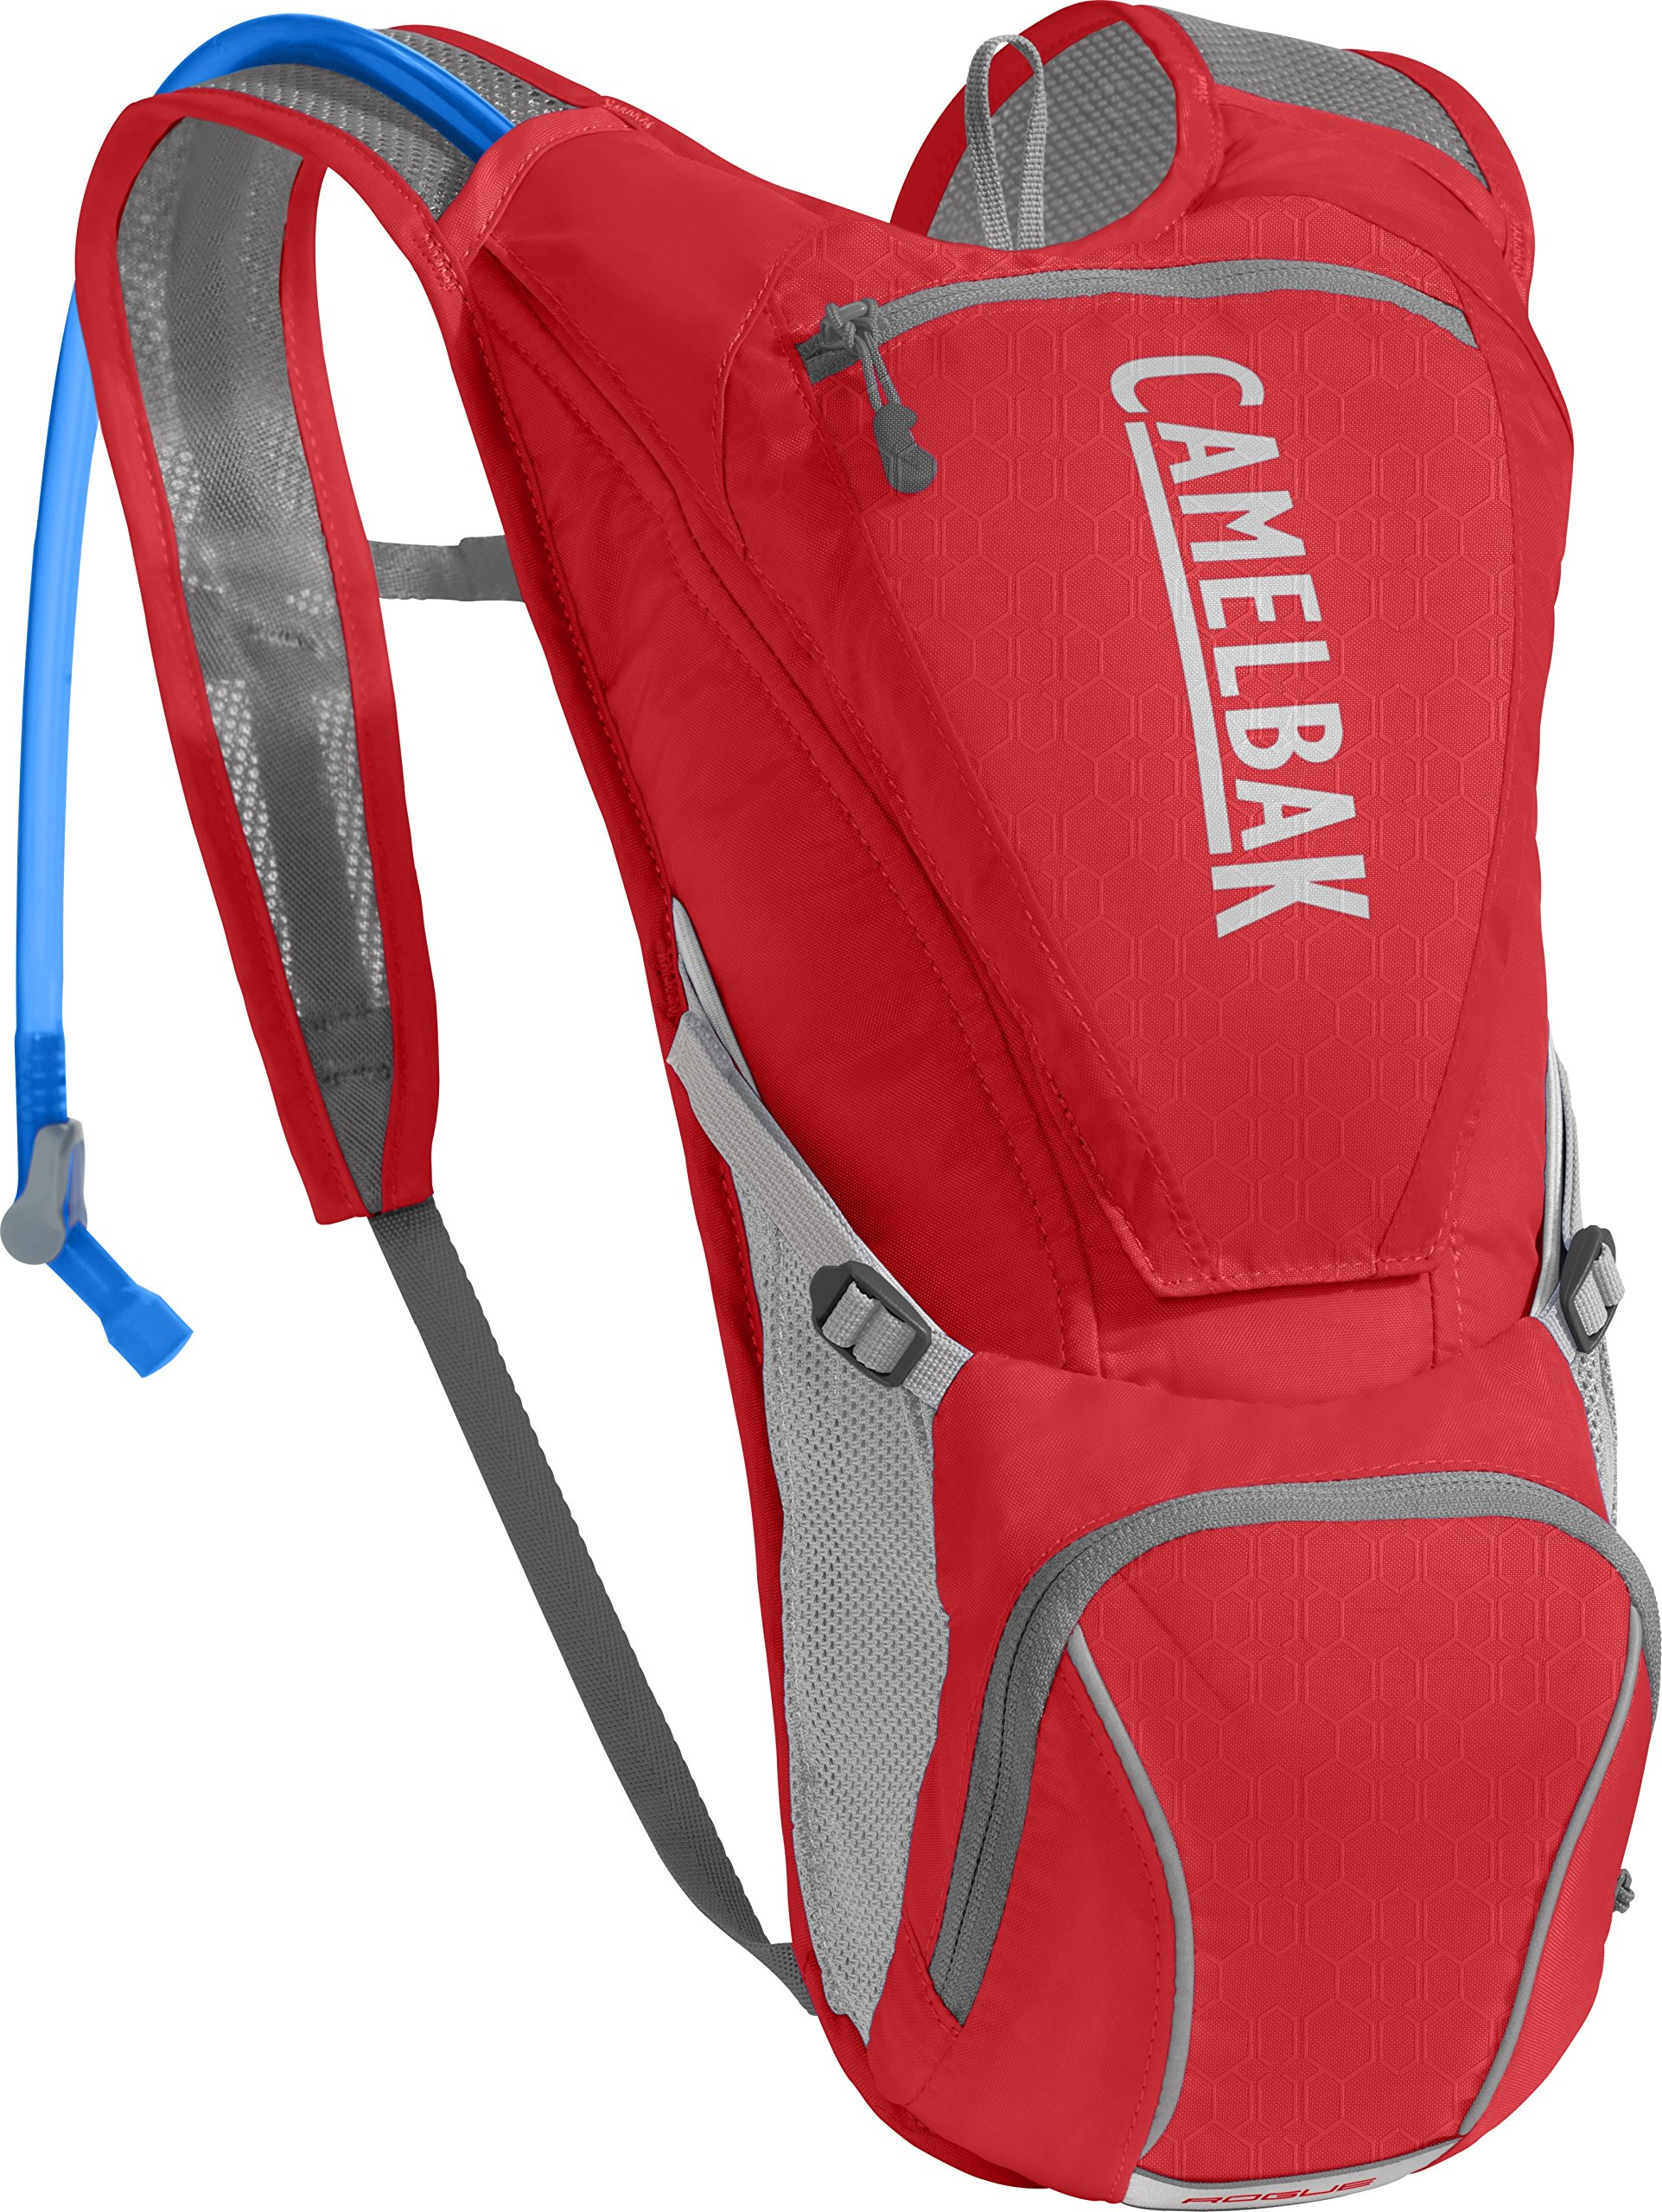 CamelBak Rogue Crux Reservoir Hydration Pack, Racing Red/Silver, 2.5 L/85 oz by CamelBak